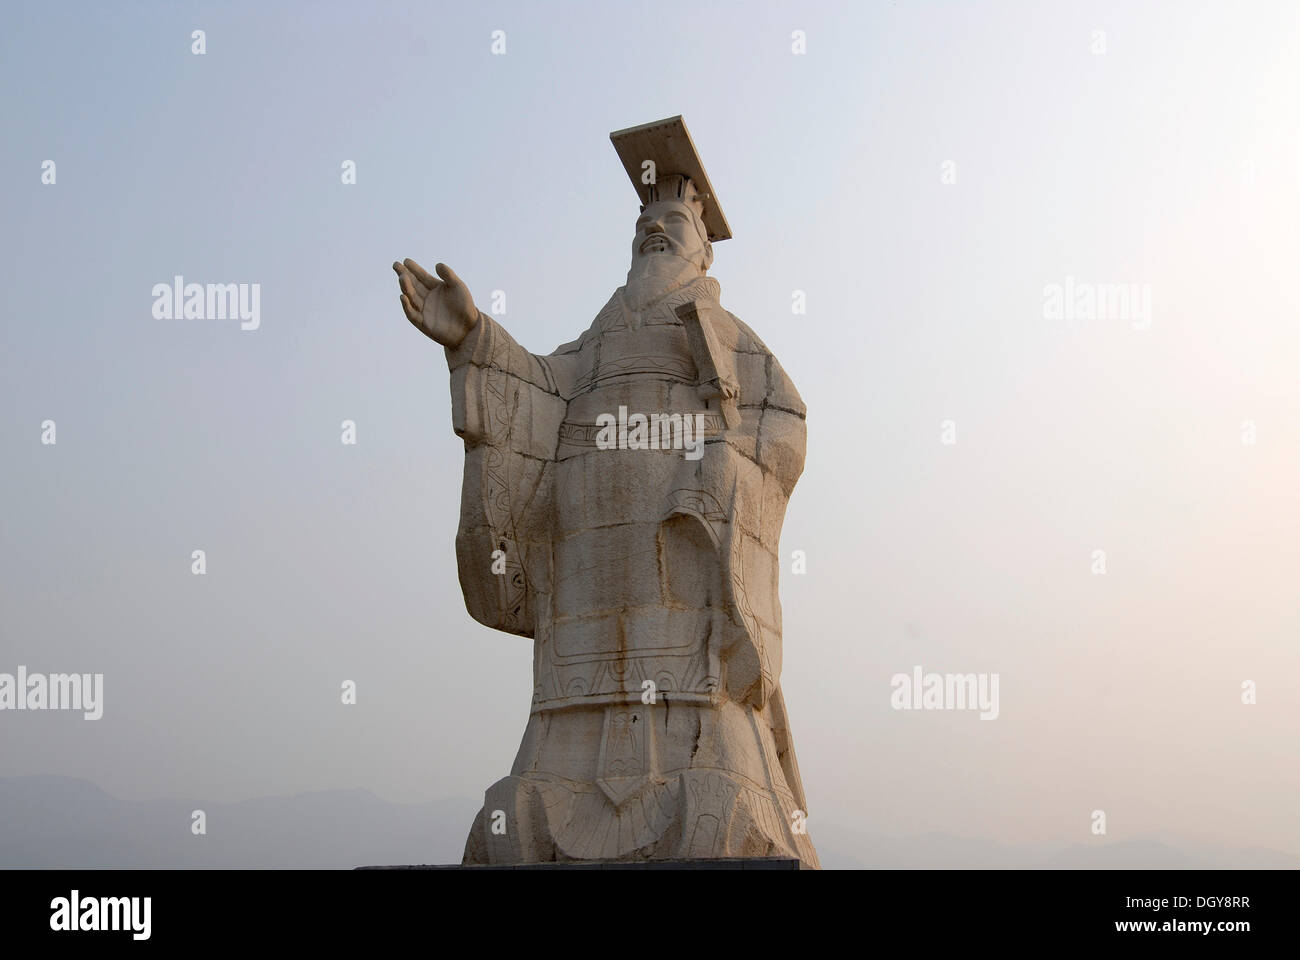 Statue Of Emperor Qin Shi Huang In Front The Mausoleum At Xian Shaanxi